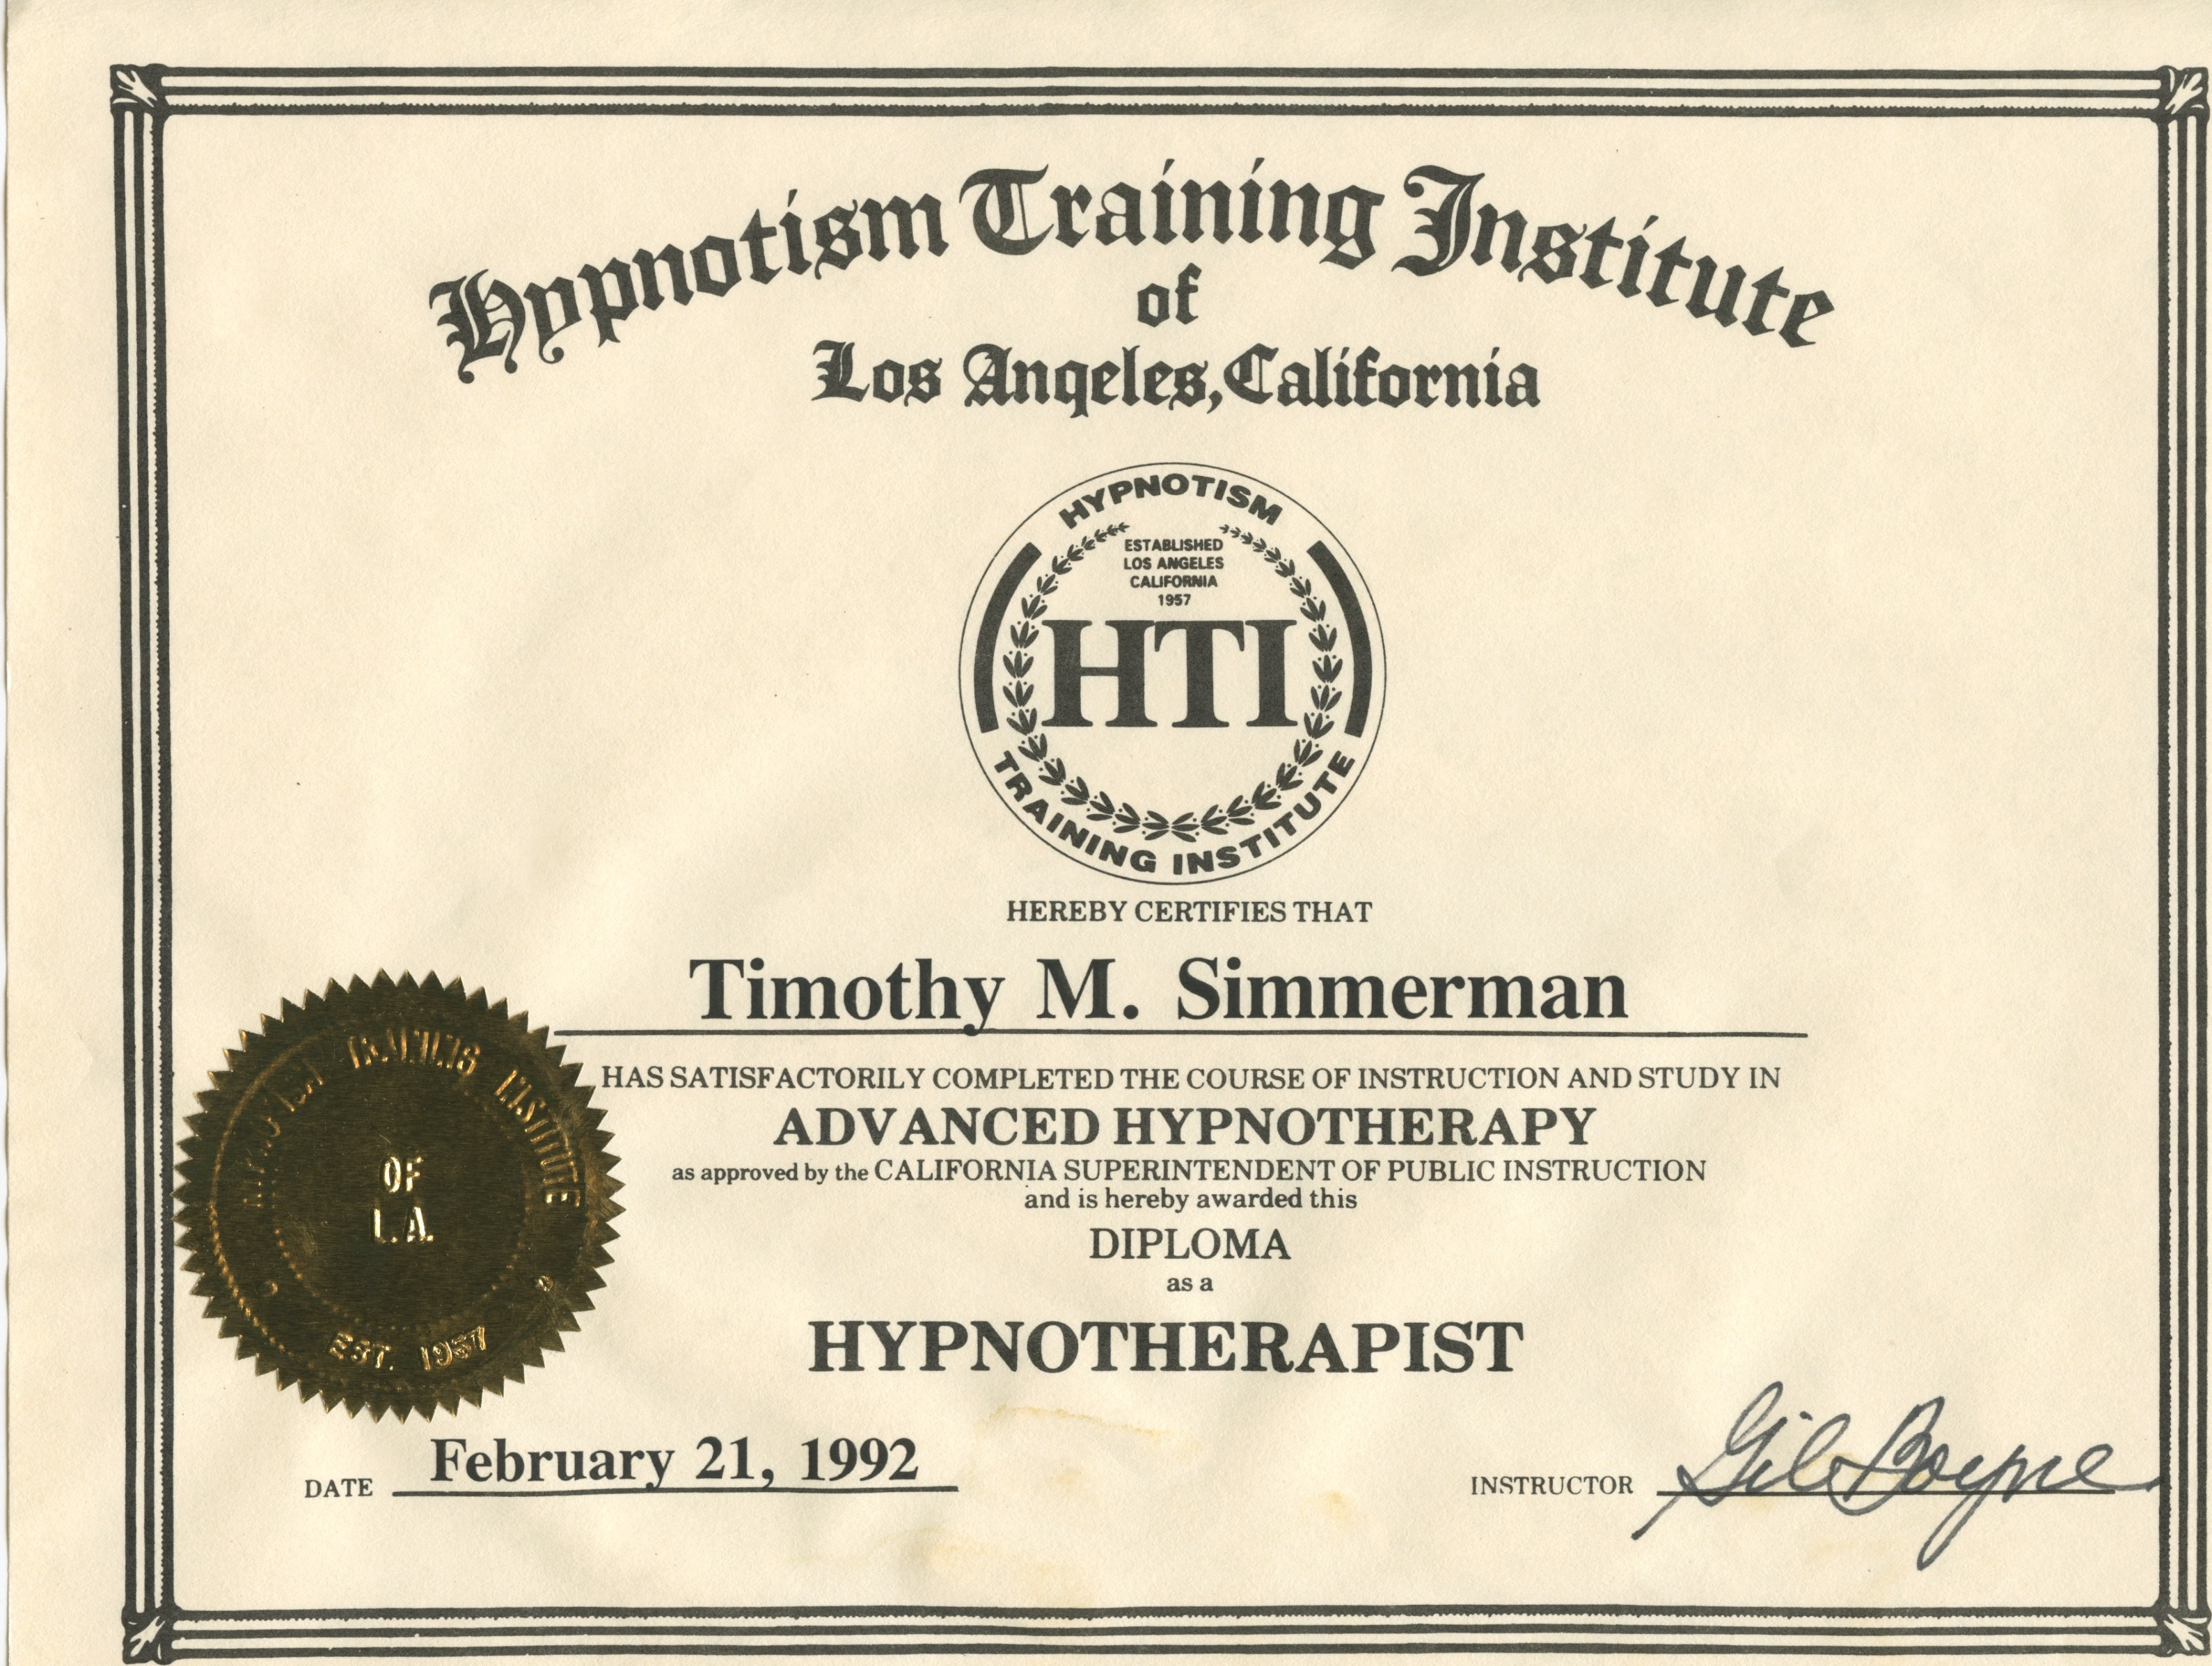 Hypnotherapy school history gil boynes certificate acknowledging tims 1992 hypnotherapy training xflitez Images